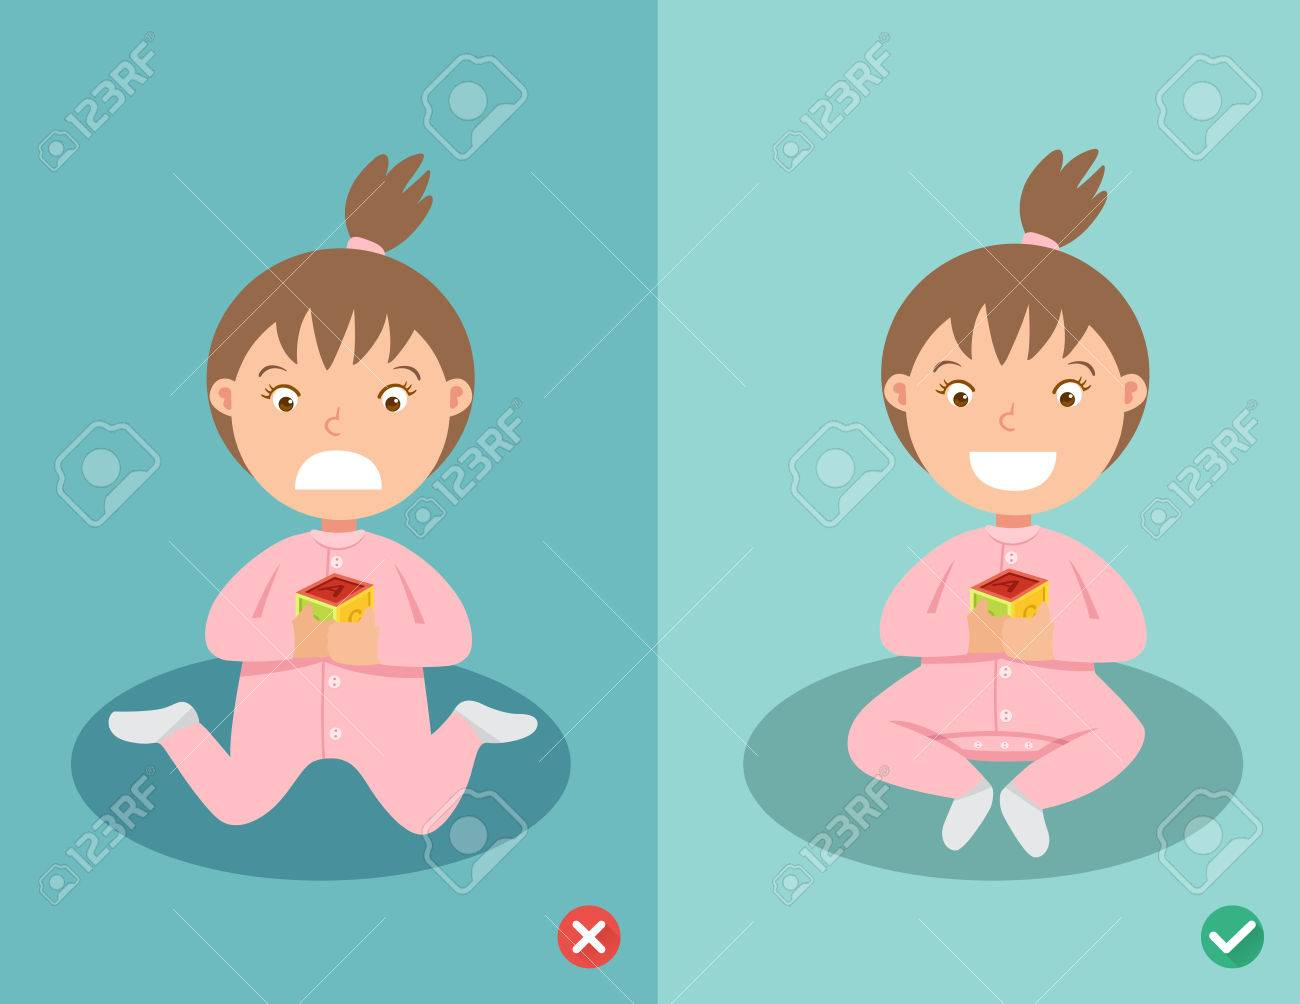 Right and wrong ways sitting position for child, stop W sitting position (safely for internal femoral torsion) . - 52743374